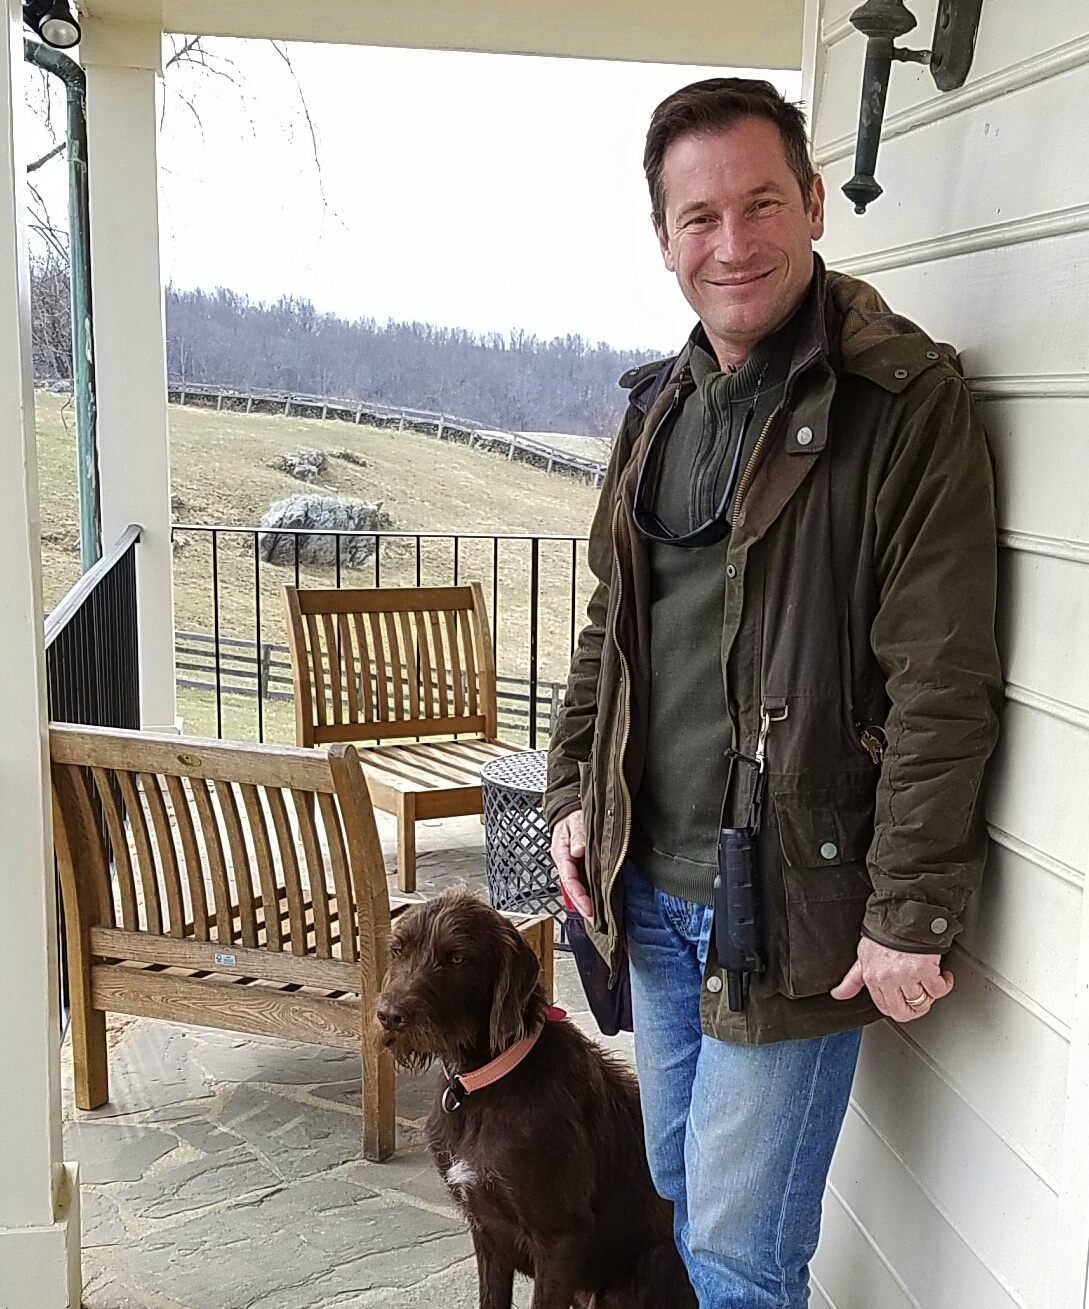 Greenhill winemaker Sébastien Marquet and his dog, Ilus, a poodle-pointer mix.